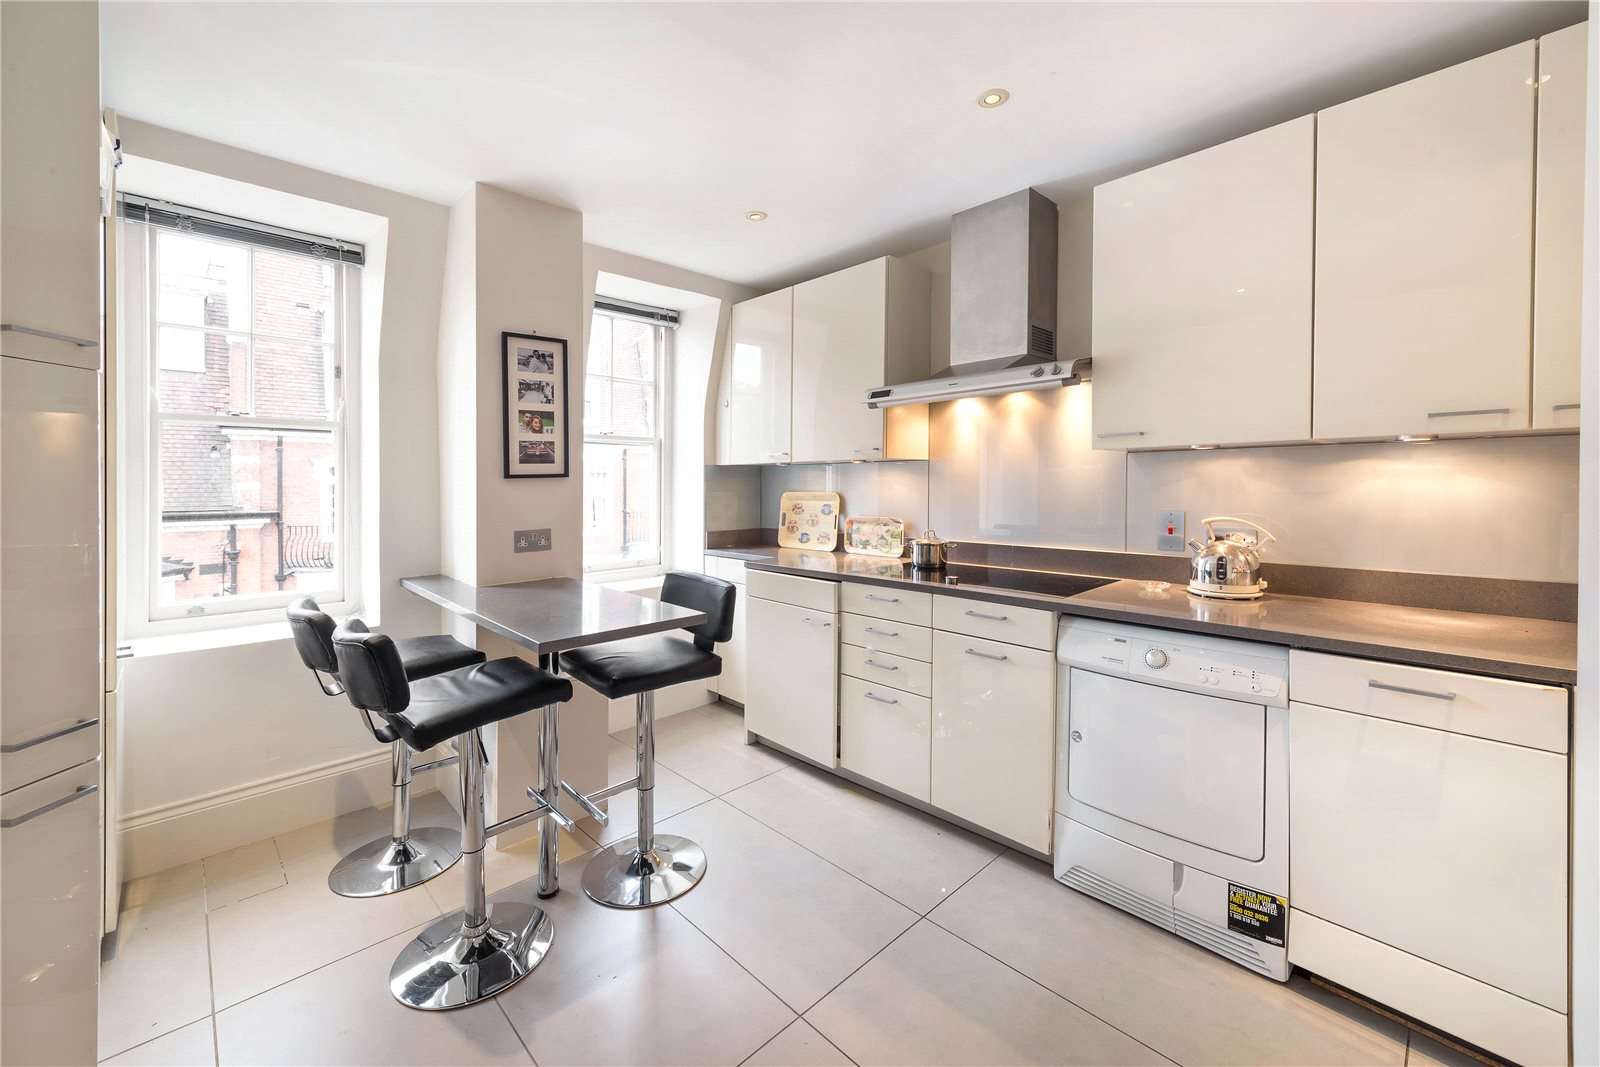 Additional photo for property listing at Sloane Court West, London, SW3 London, England